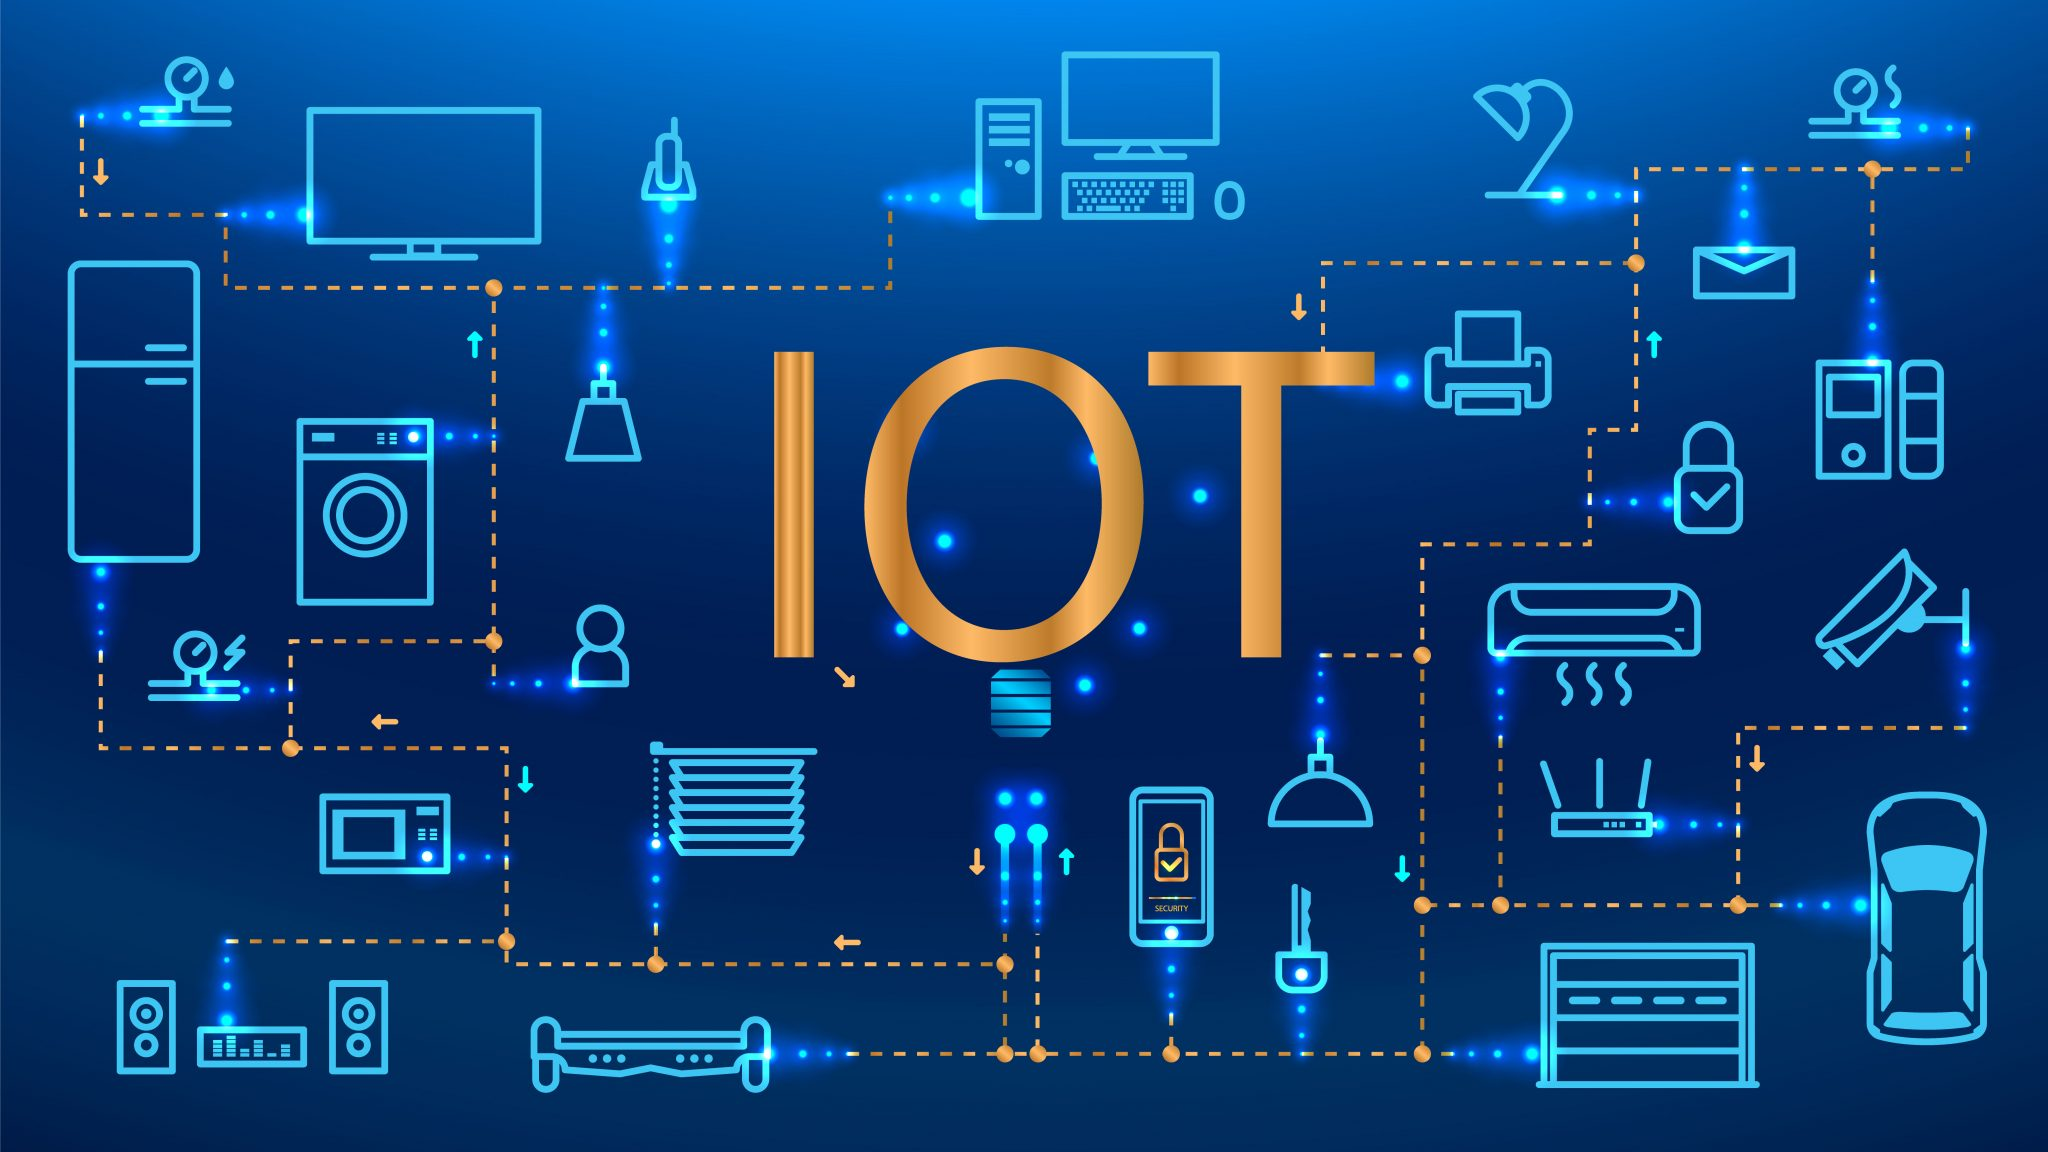 Thinking of Buying IoT Equipment? Here's Some Advice…